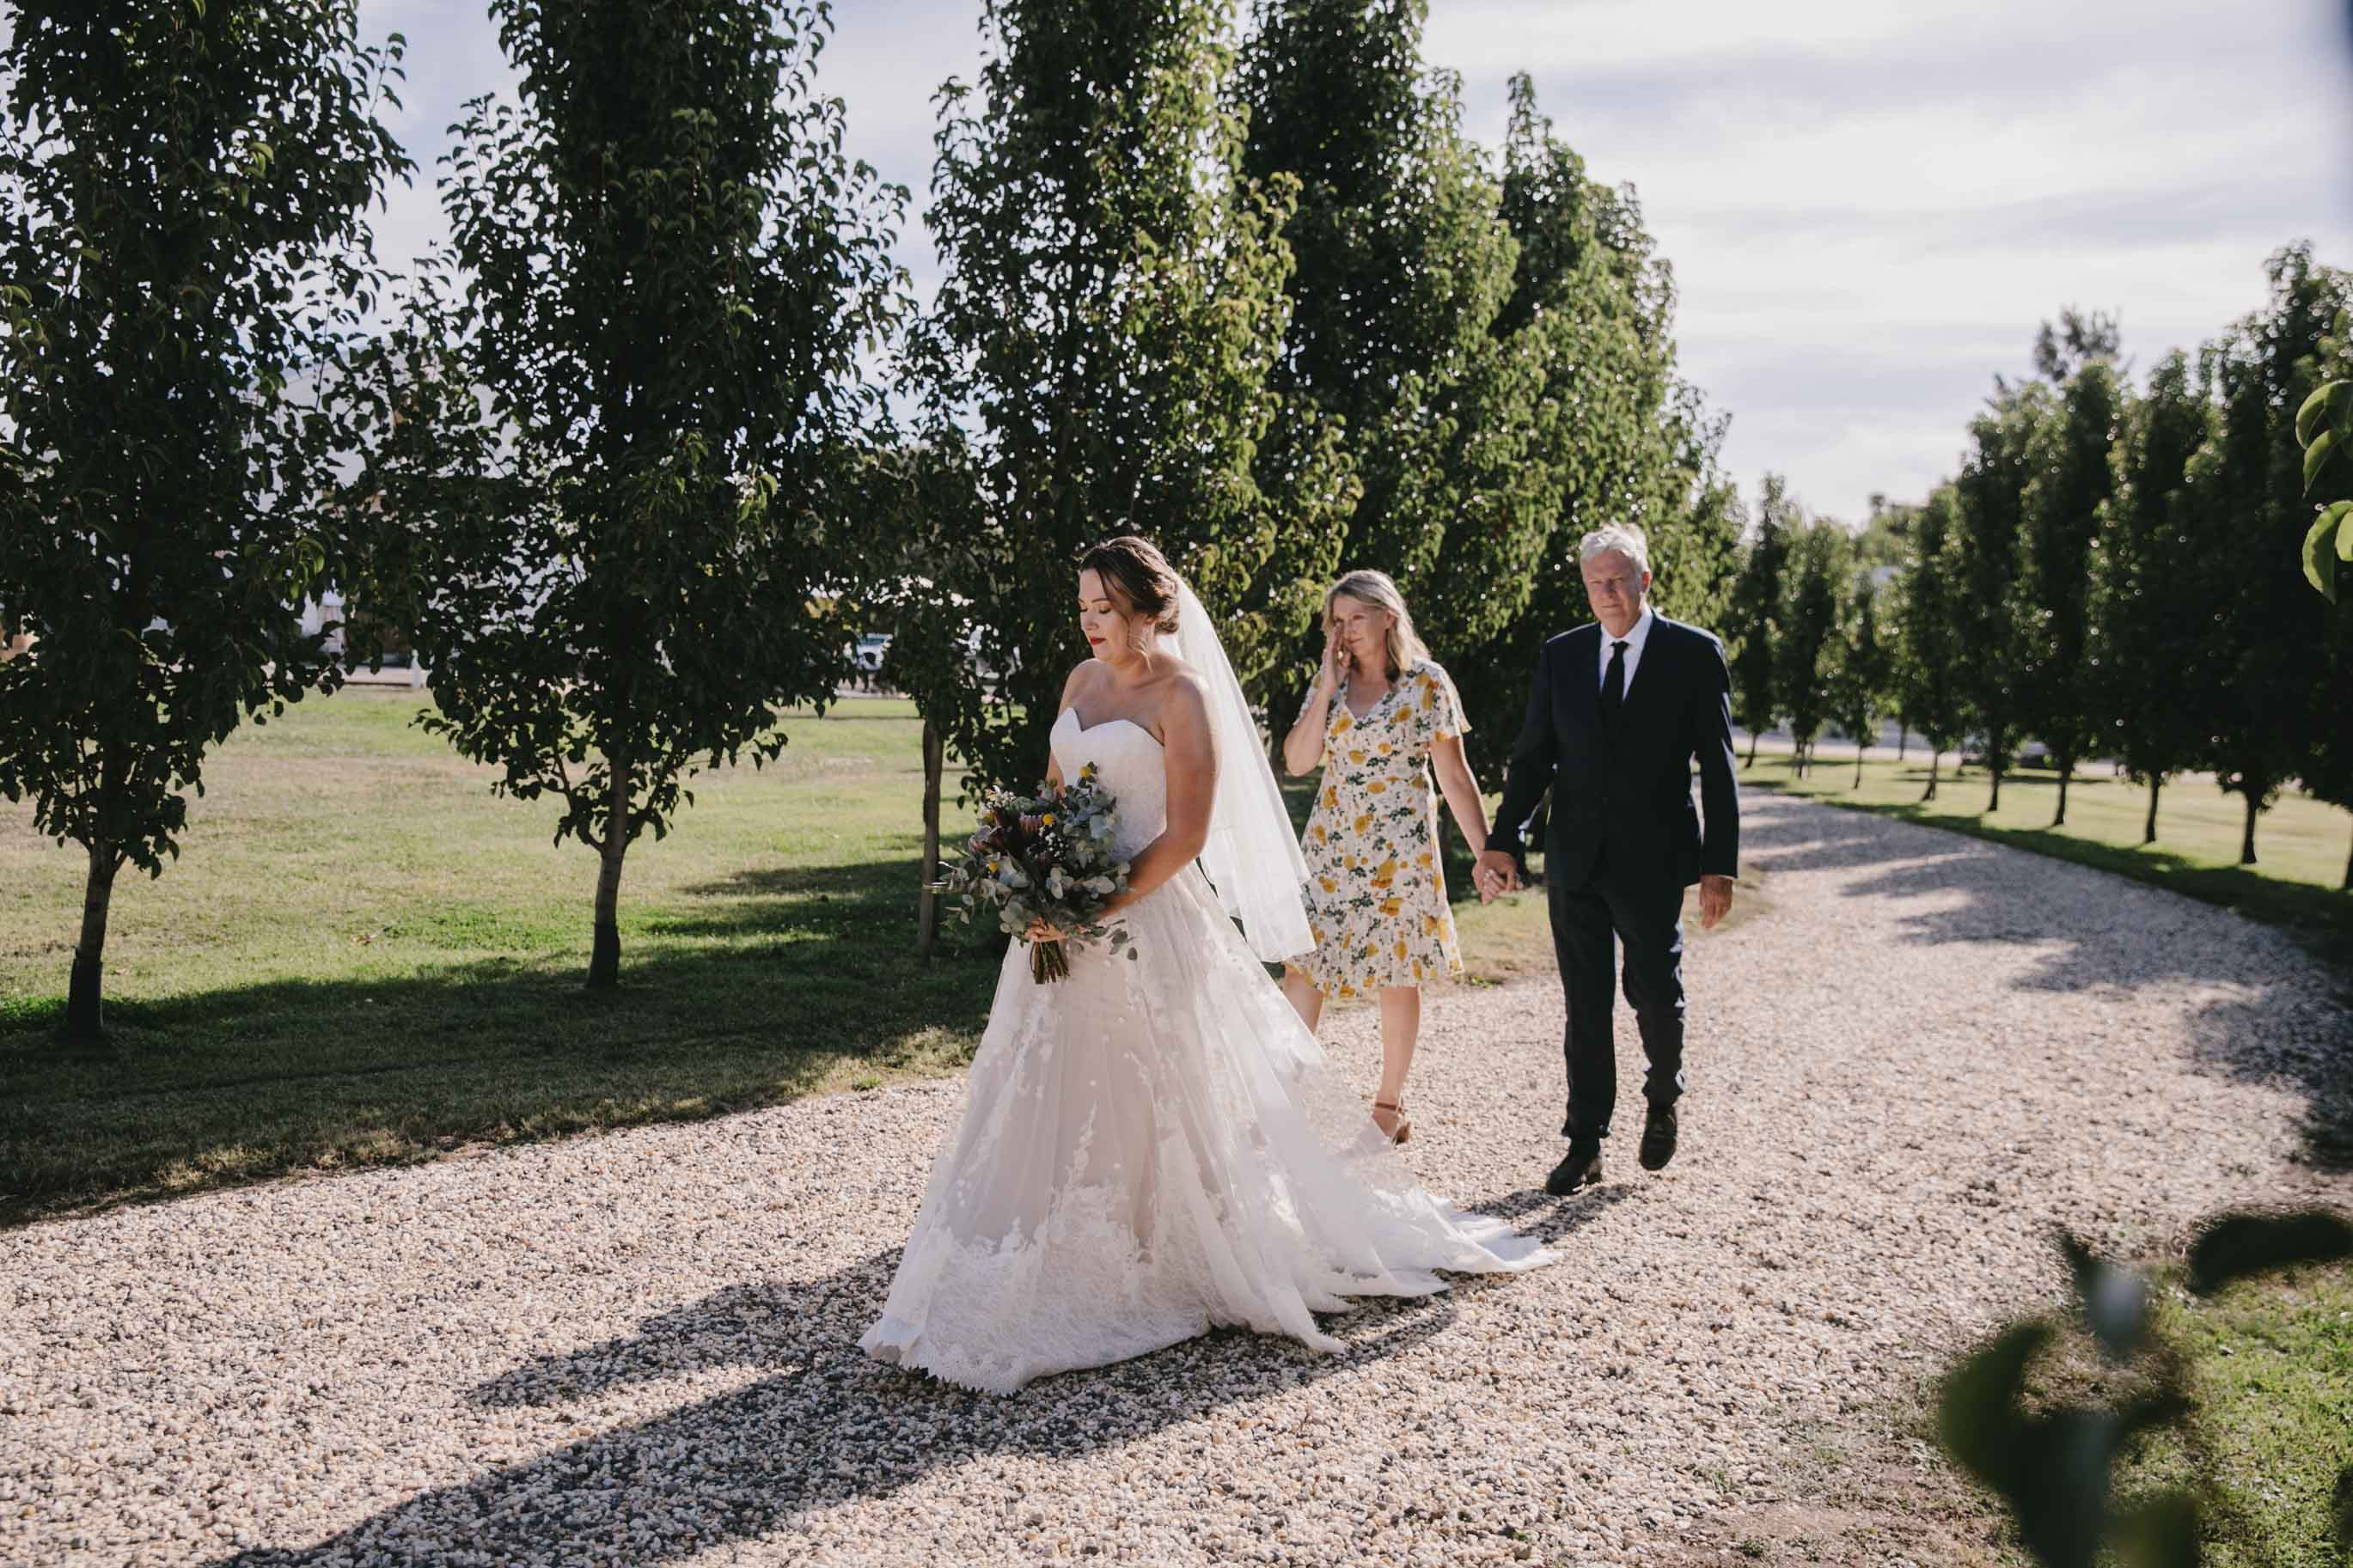 Mia + Ben // Byrchendale, Murchison North